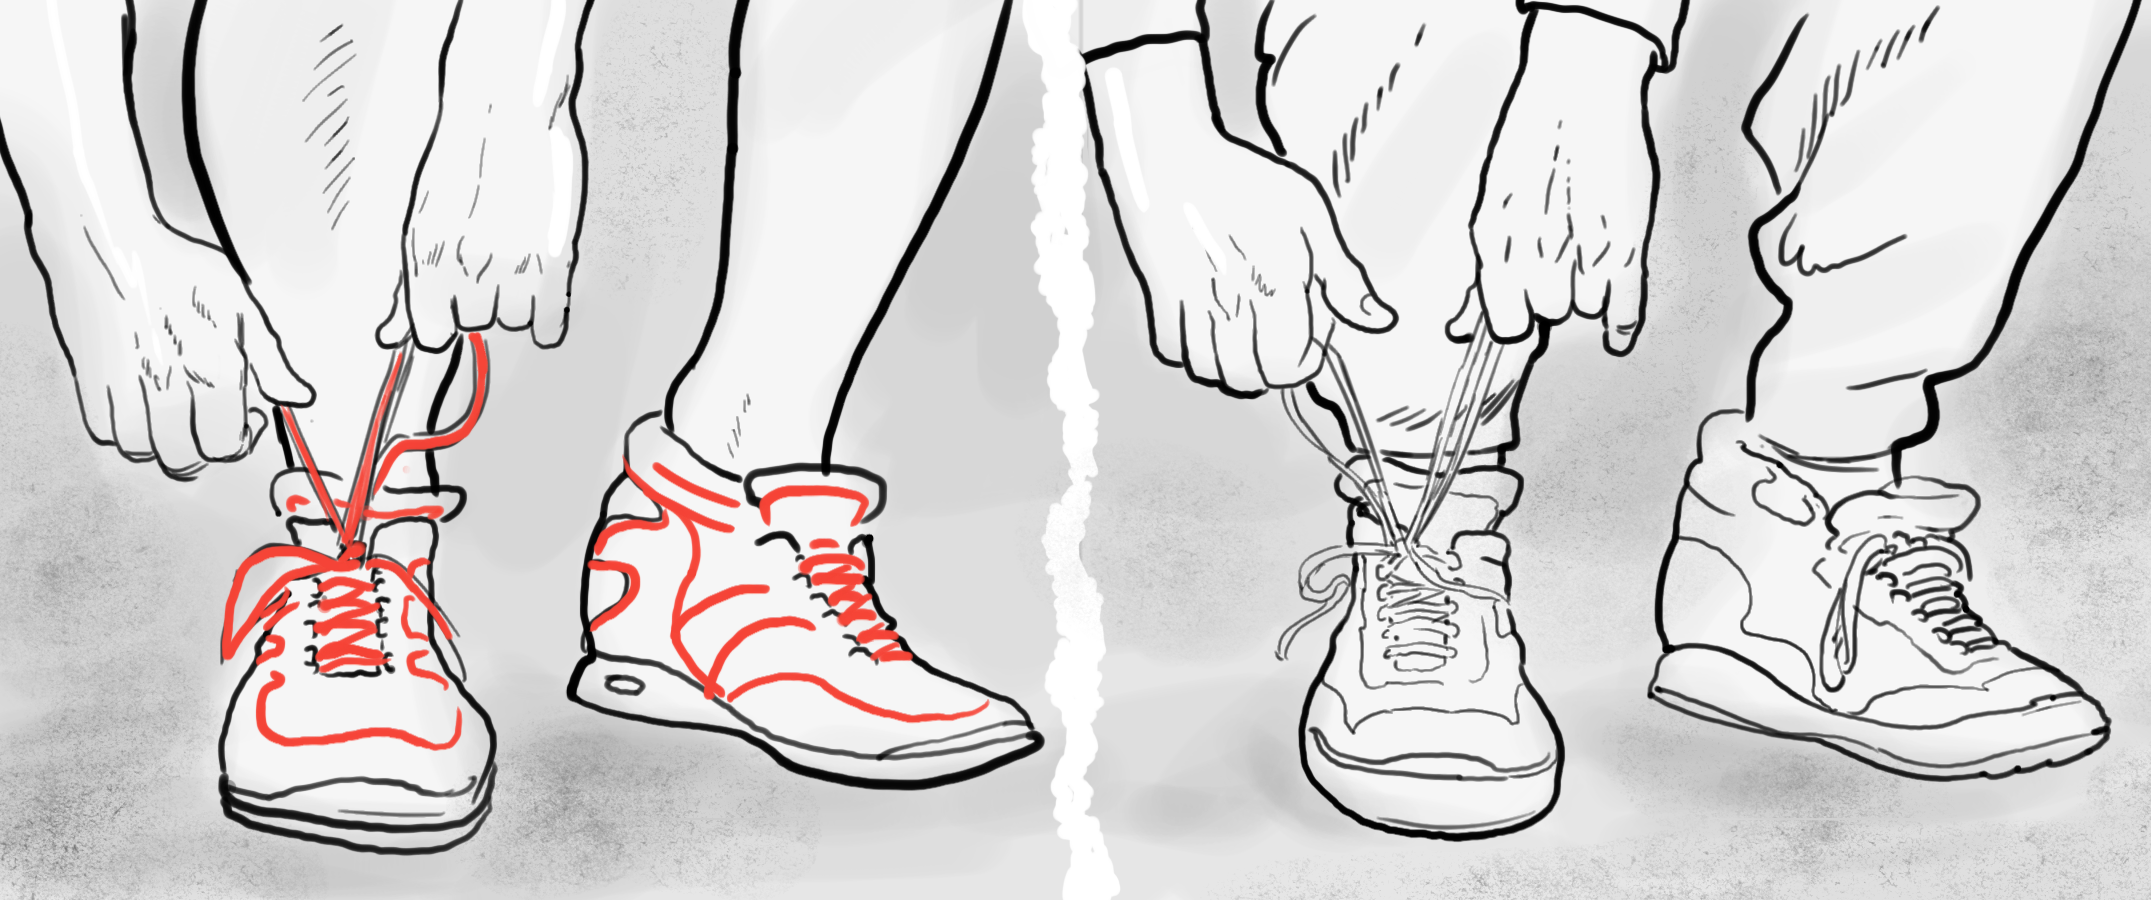 Storyboard frame, lace-ups